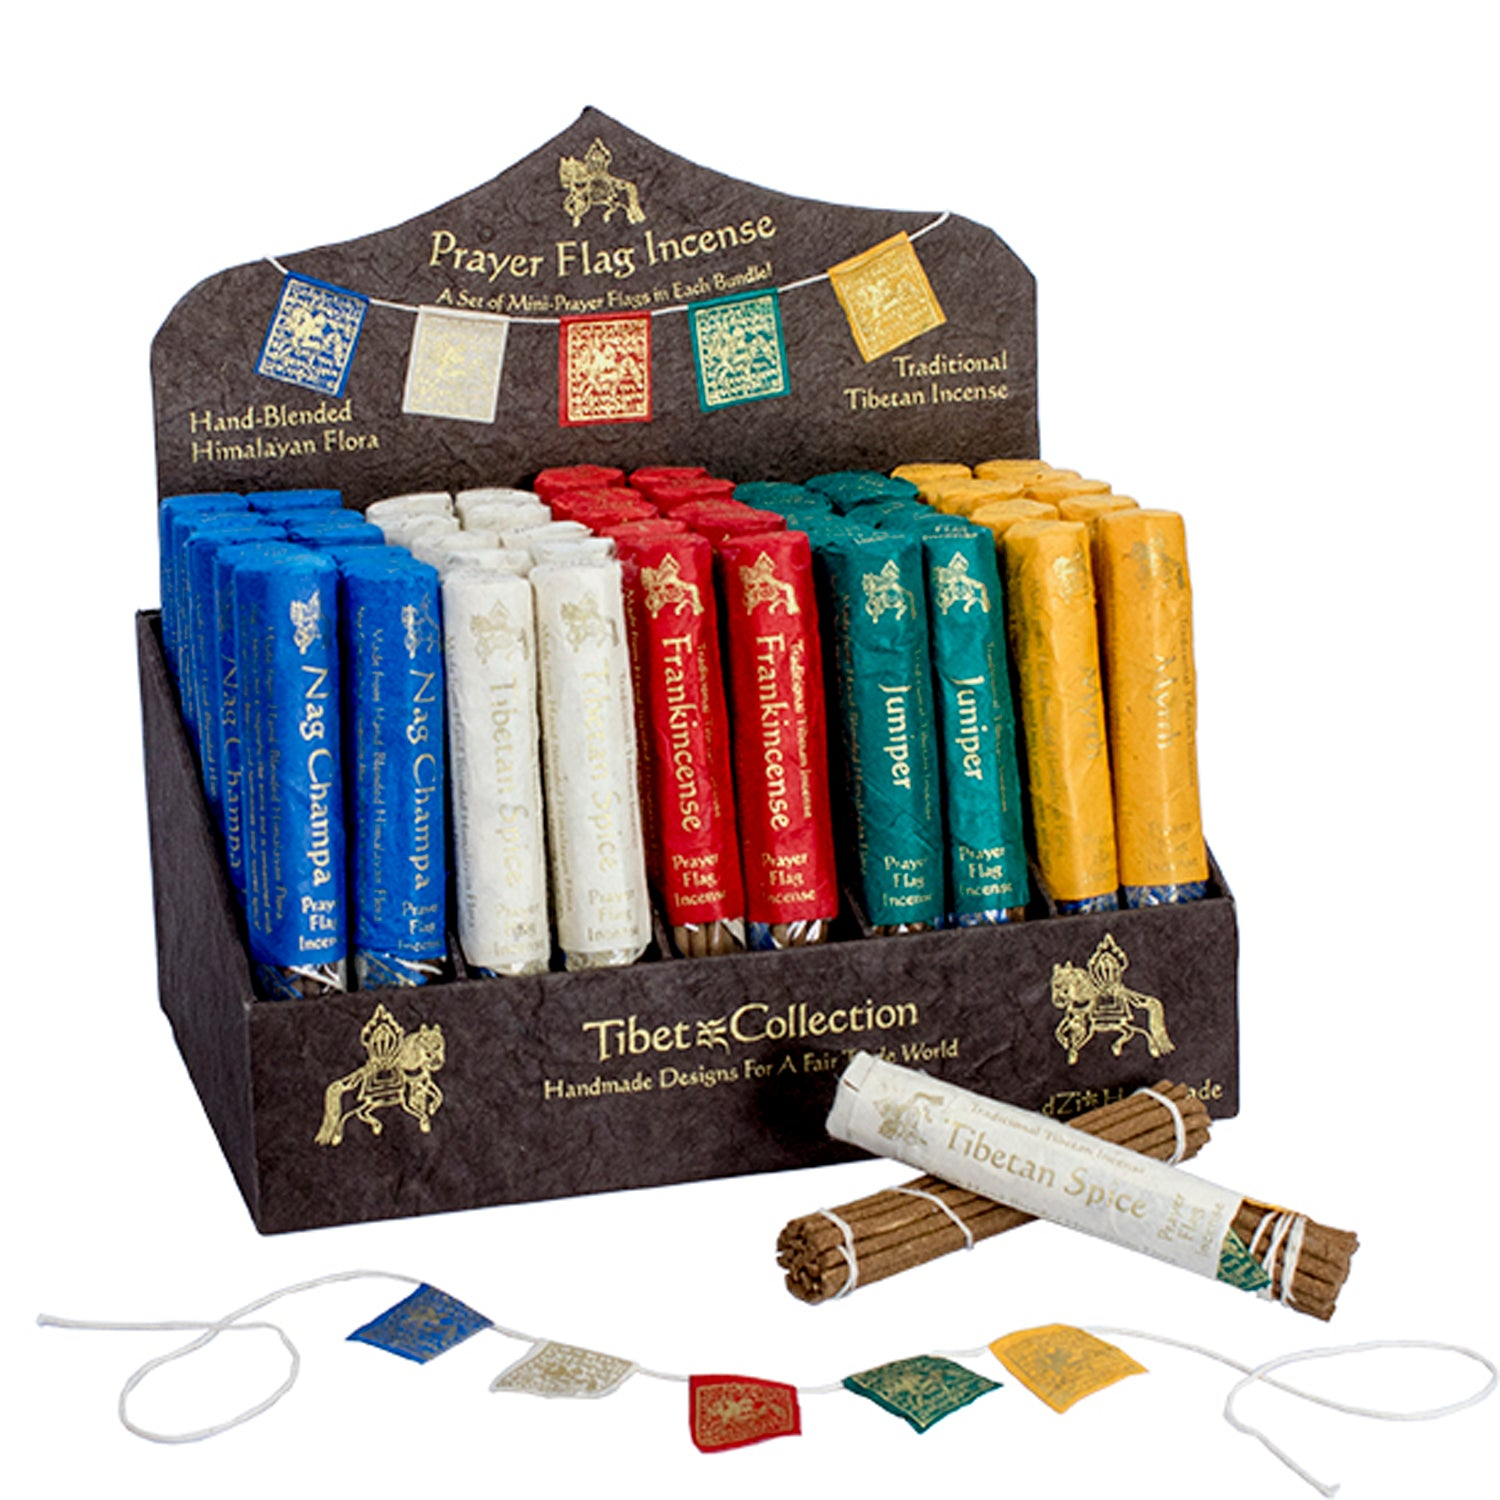 Prayer Flag and Incense Display Kit